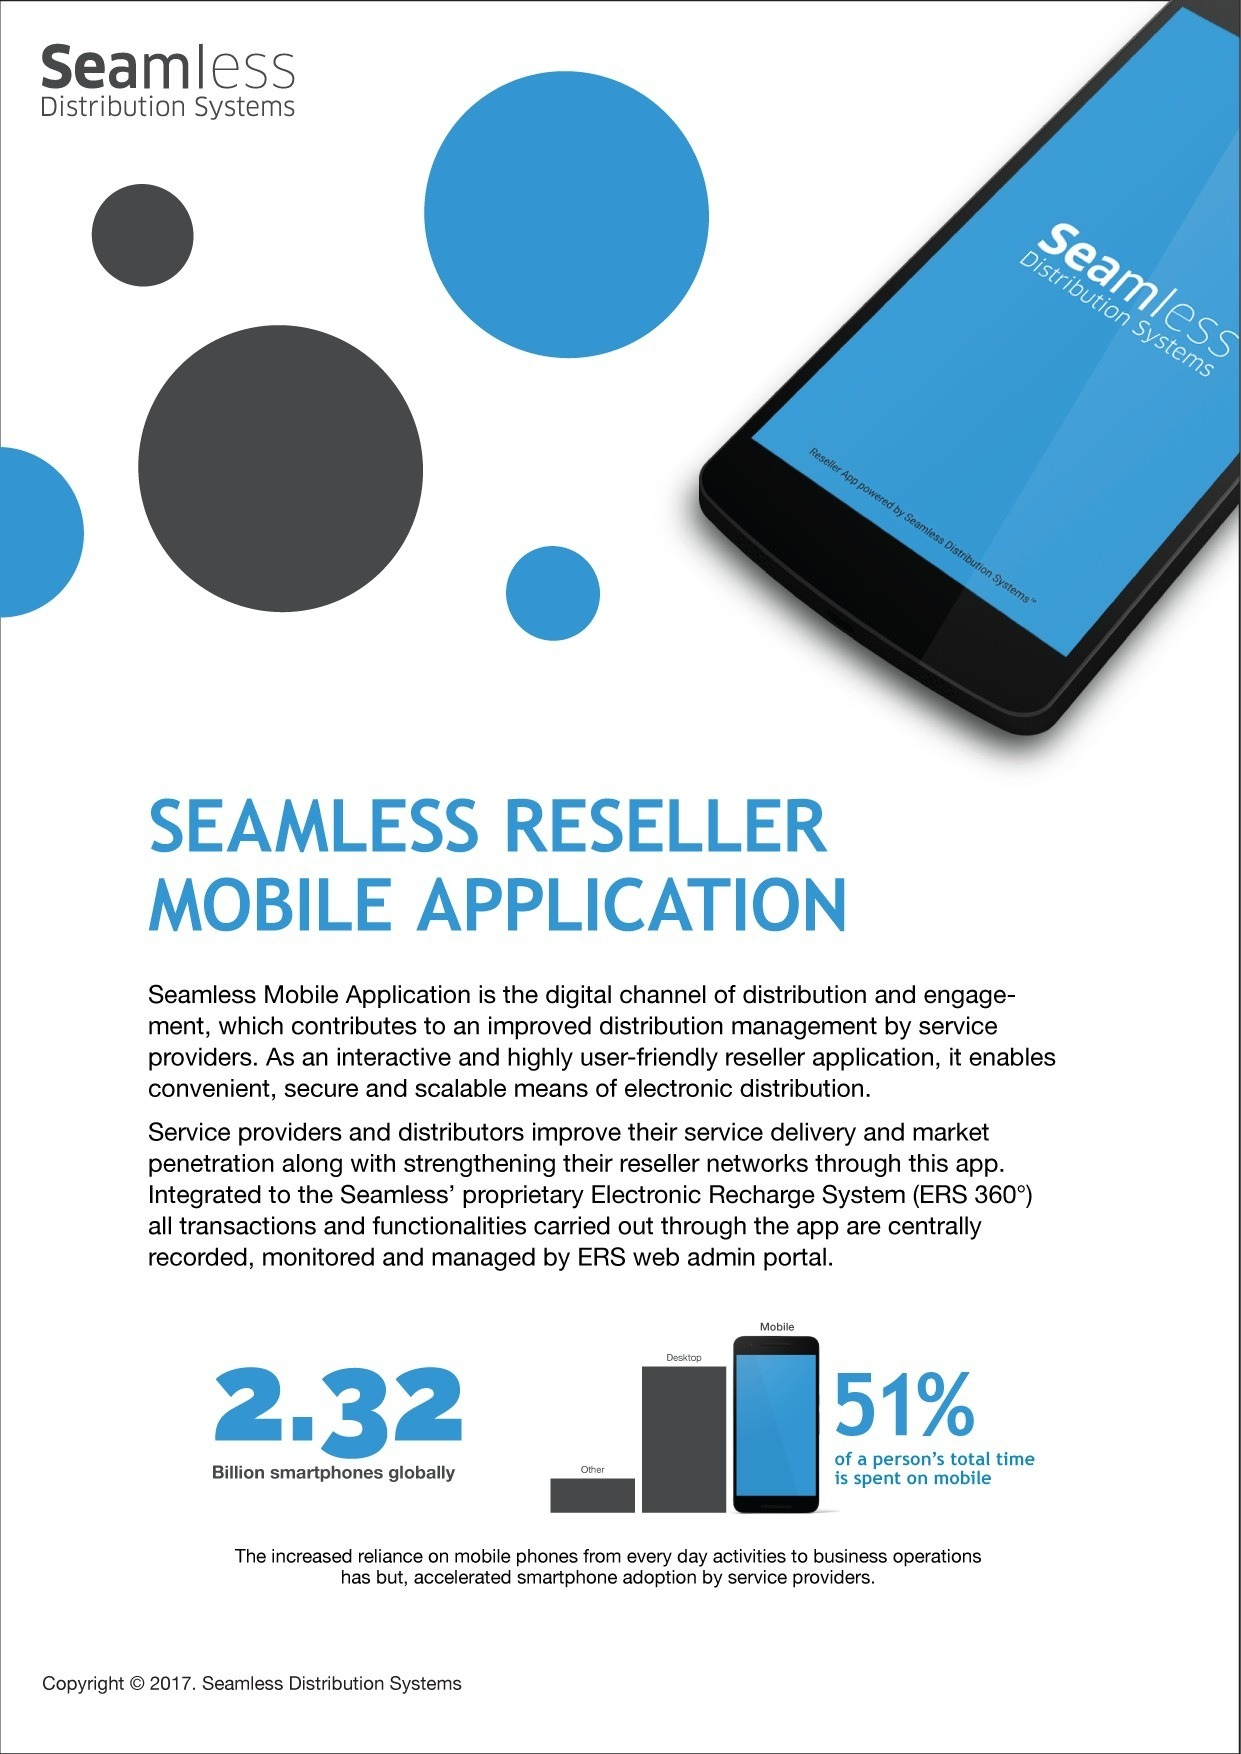 Seamless reseller mobile application brochure screenshot